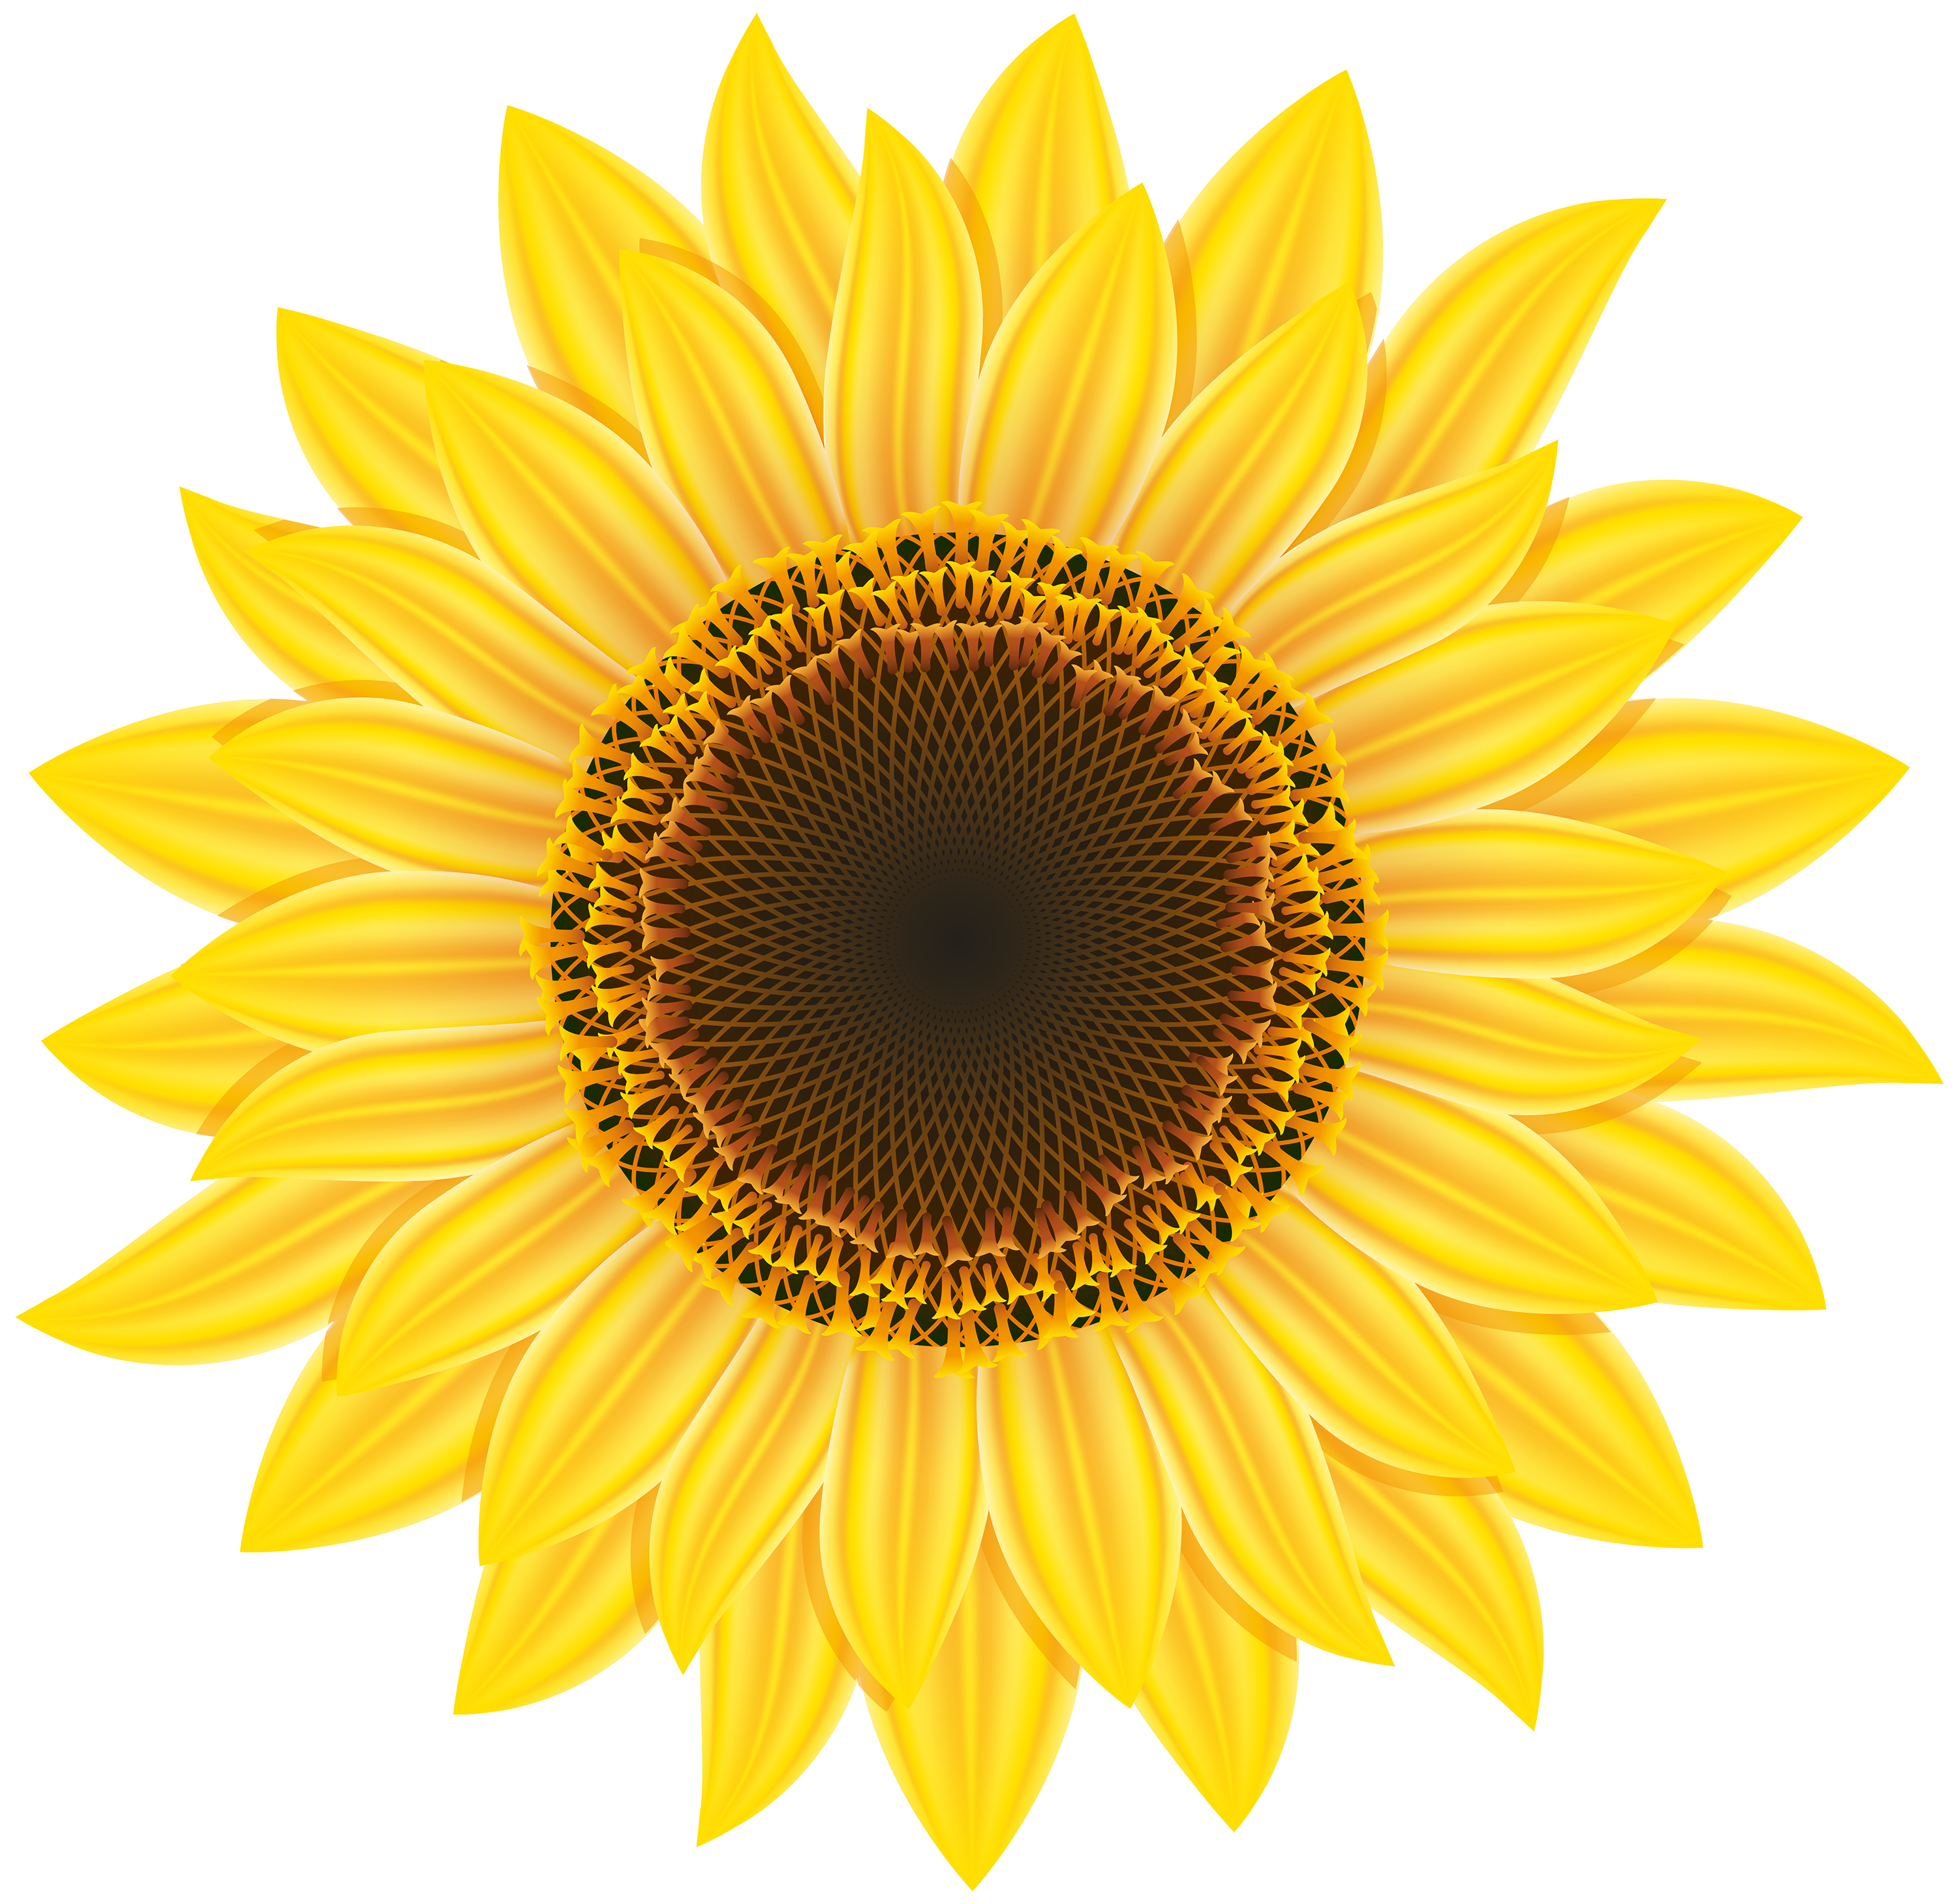 Free Sunflower Clipart Png, Download Free Clip Art, Free.